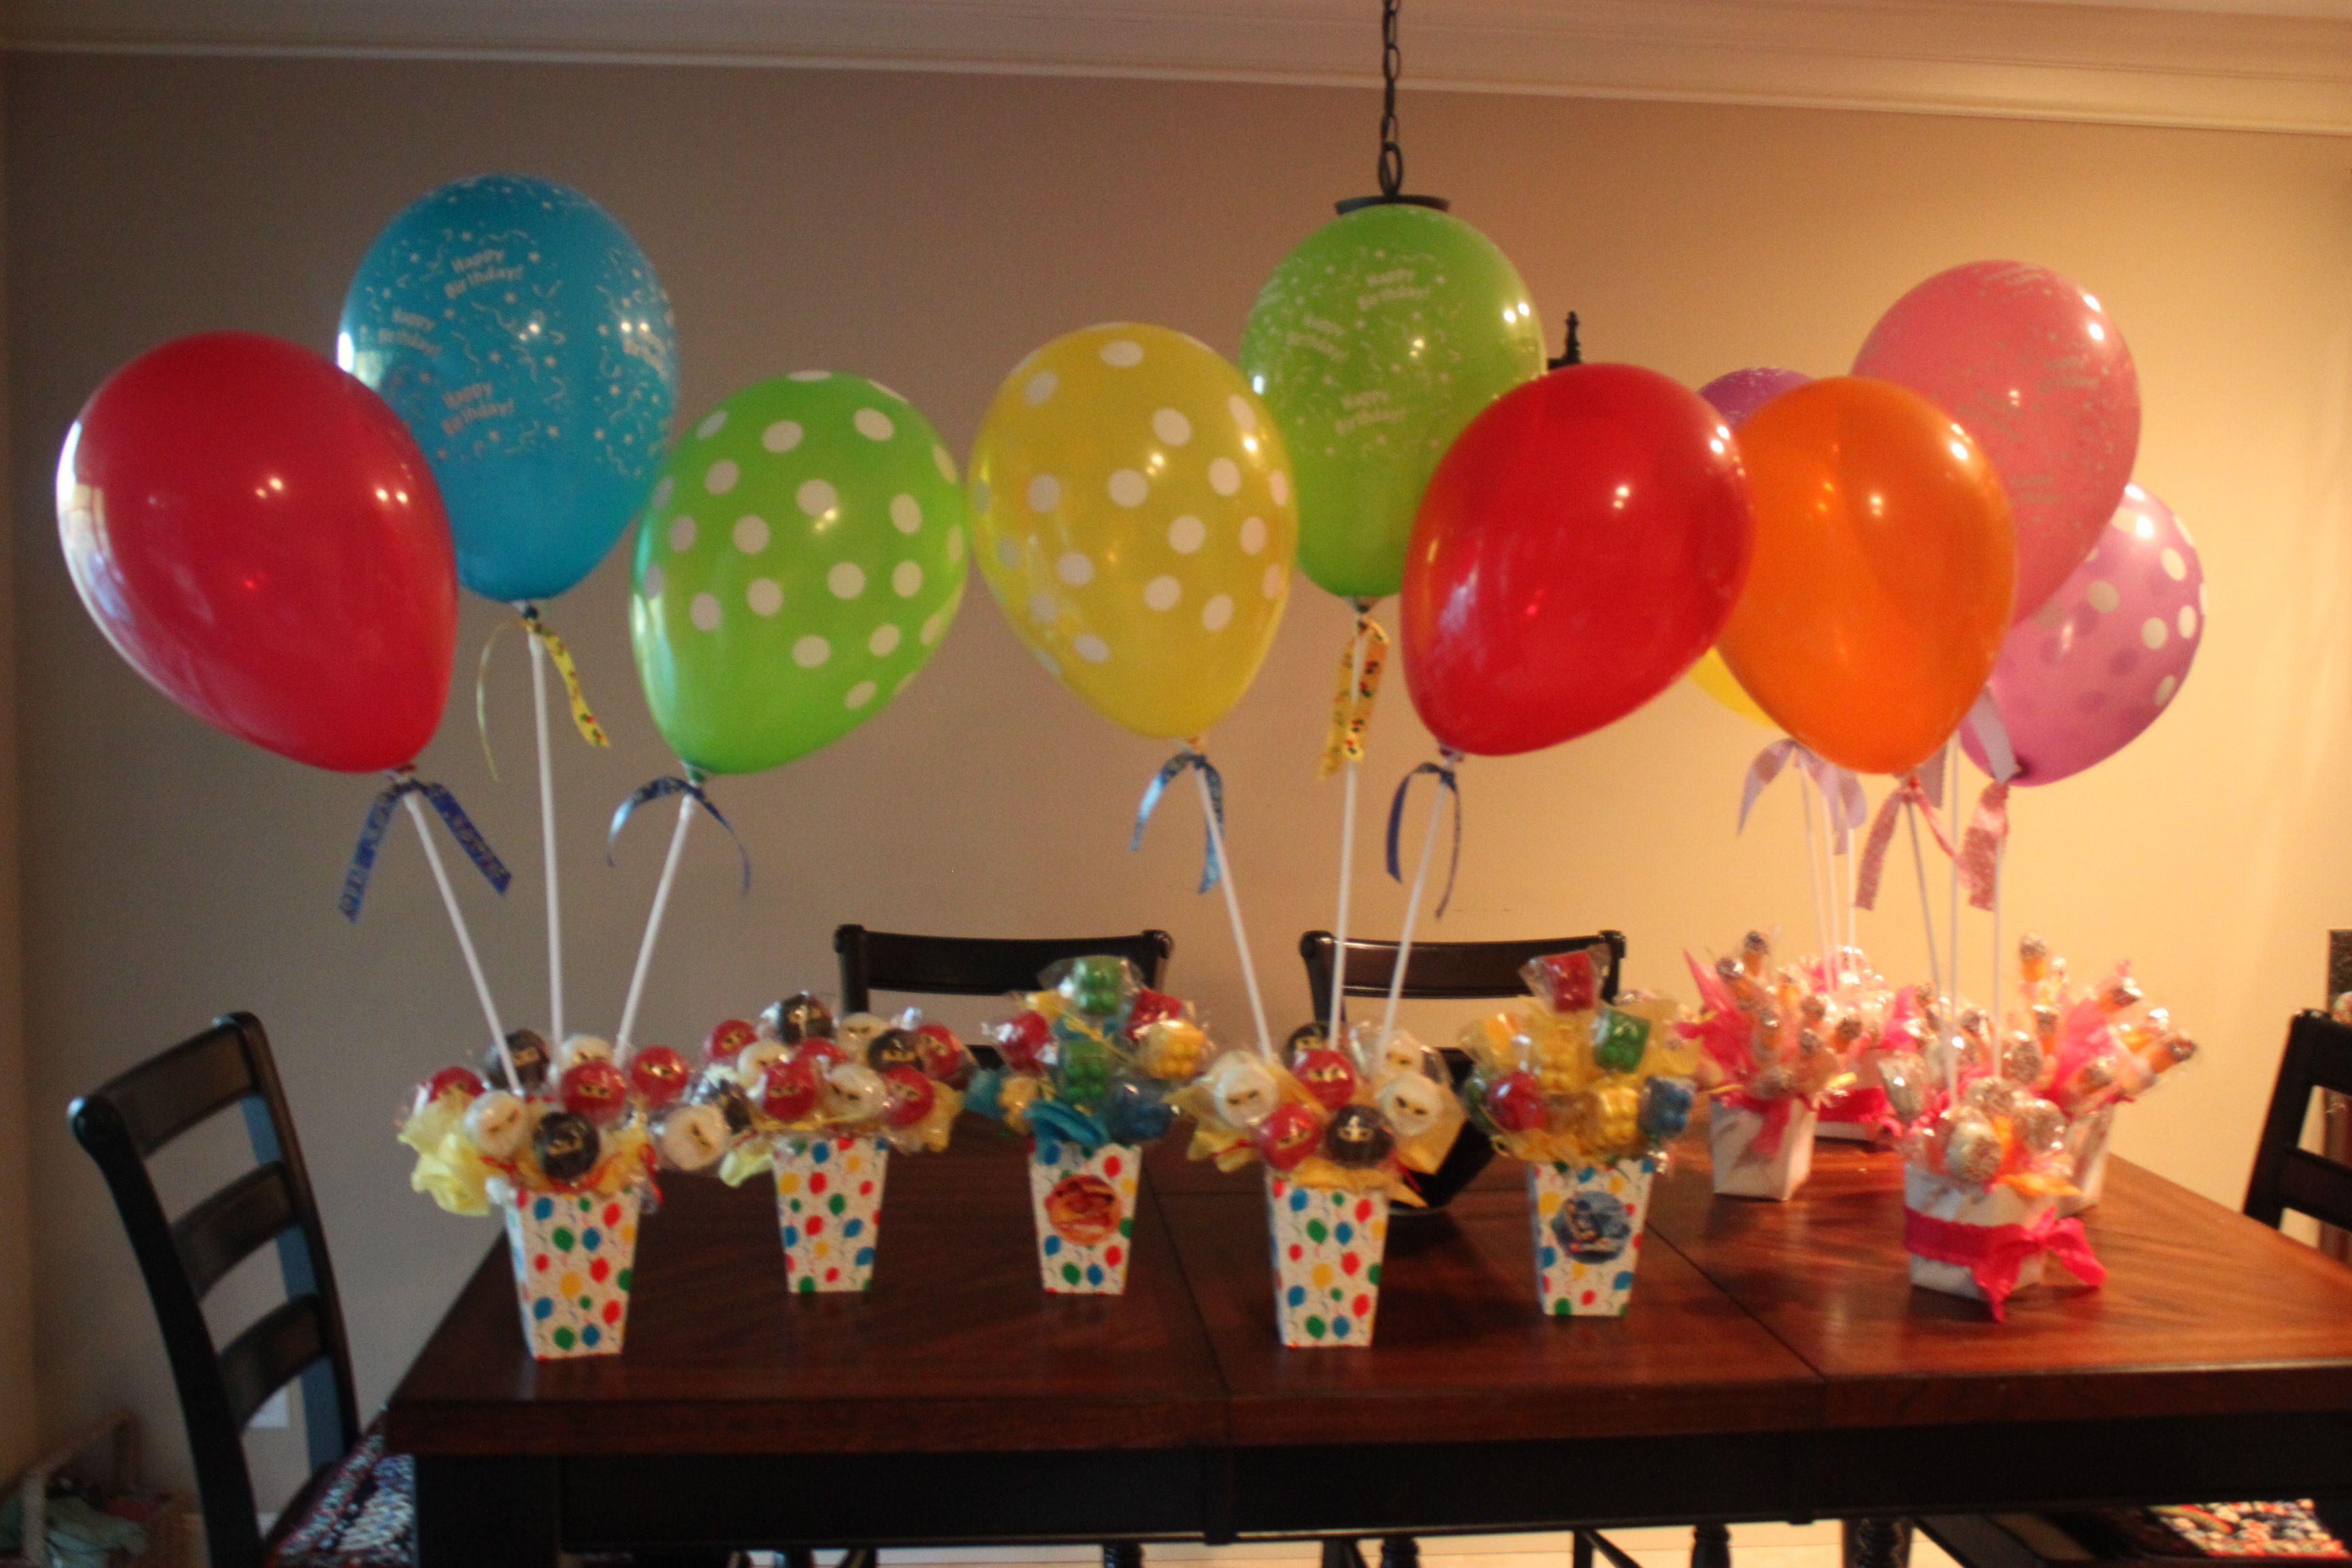 Balloon stick centerpieces for outdoor party so wind won t